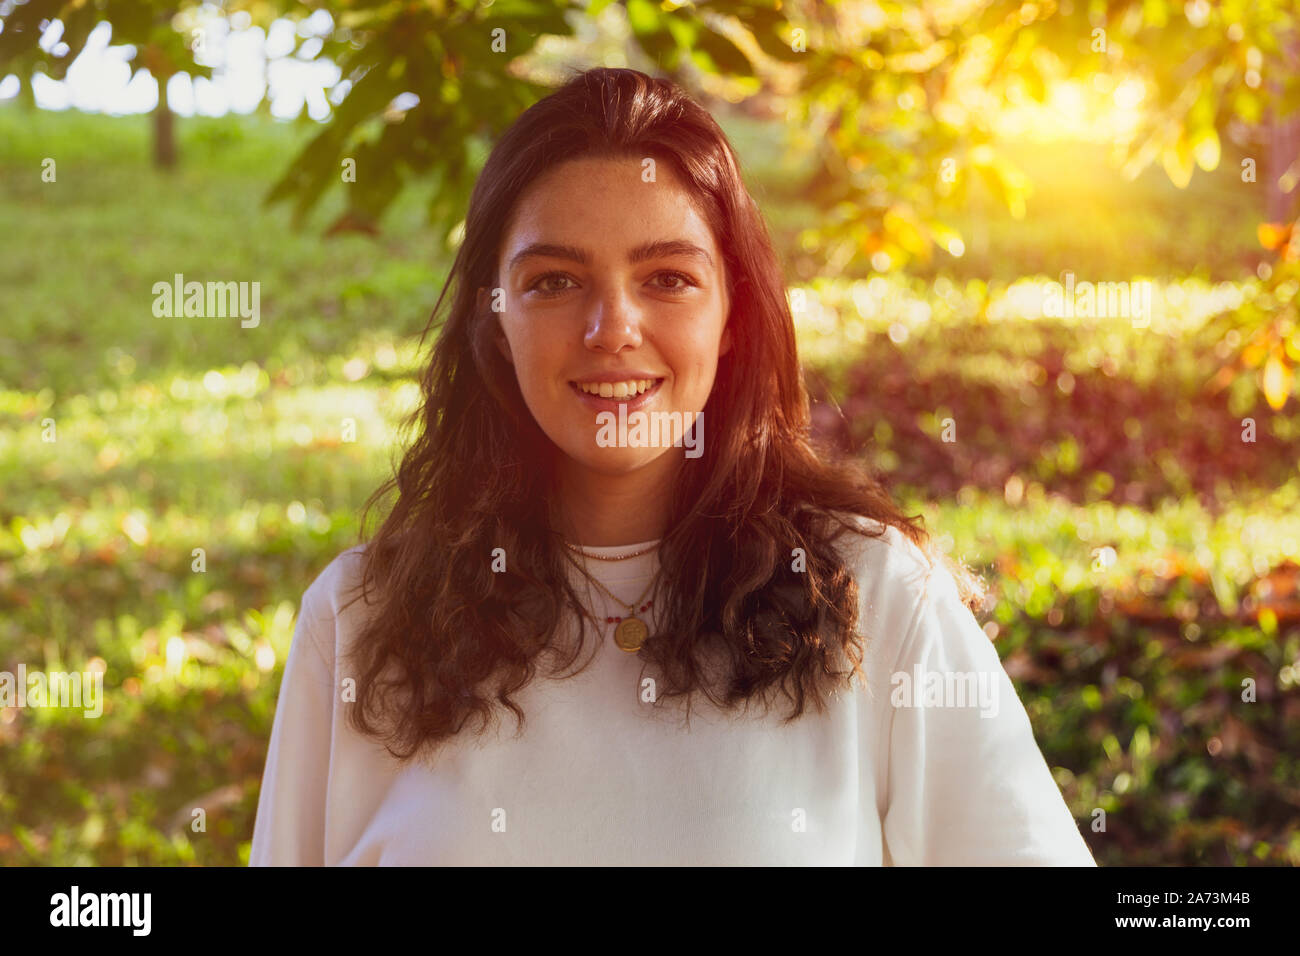 Young woman smiling in nature Banque D'Images